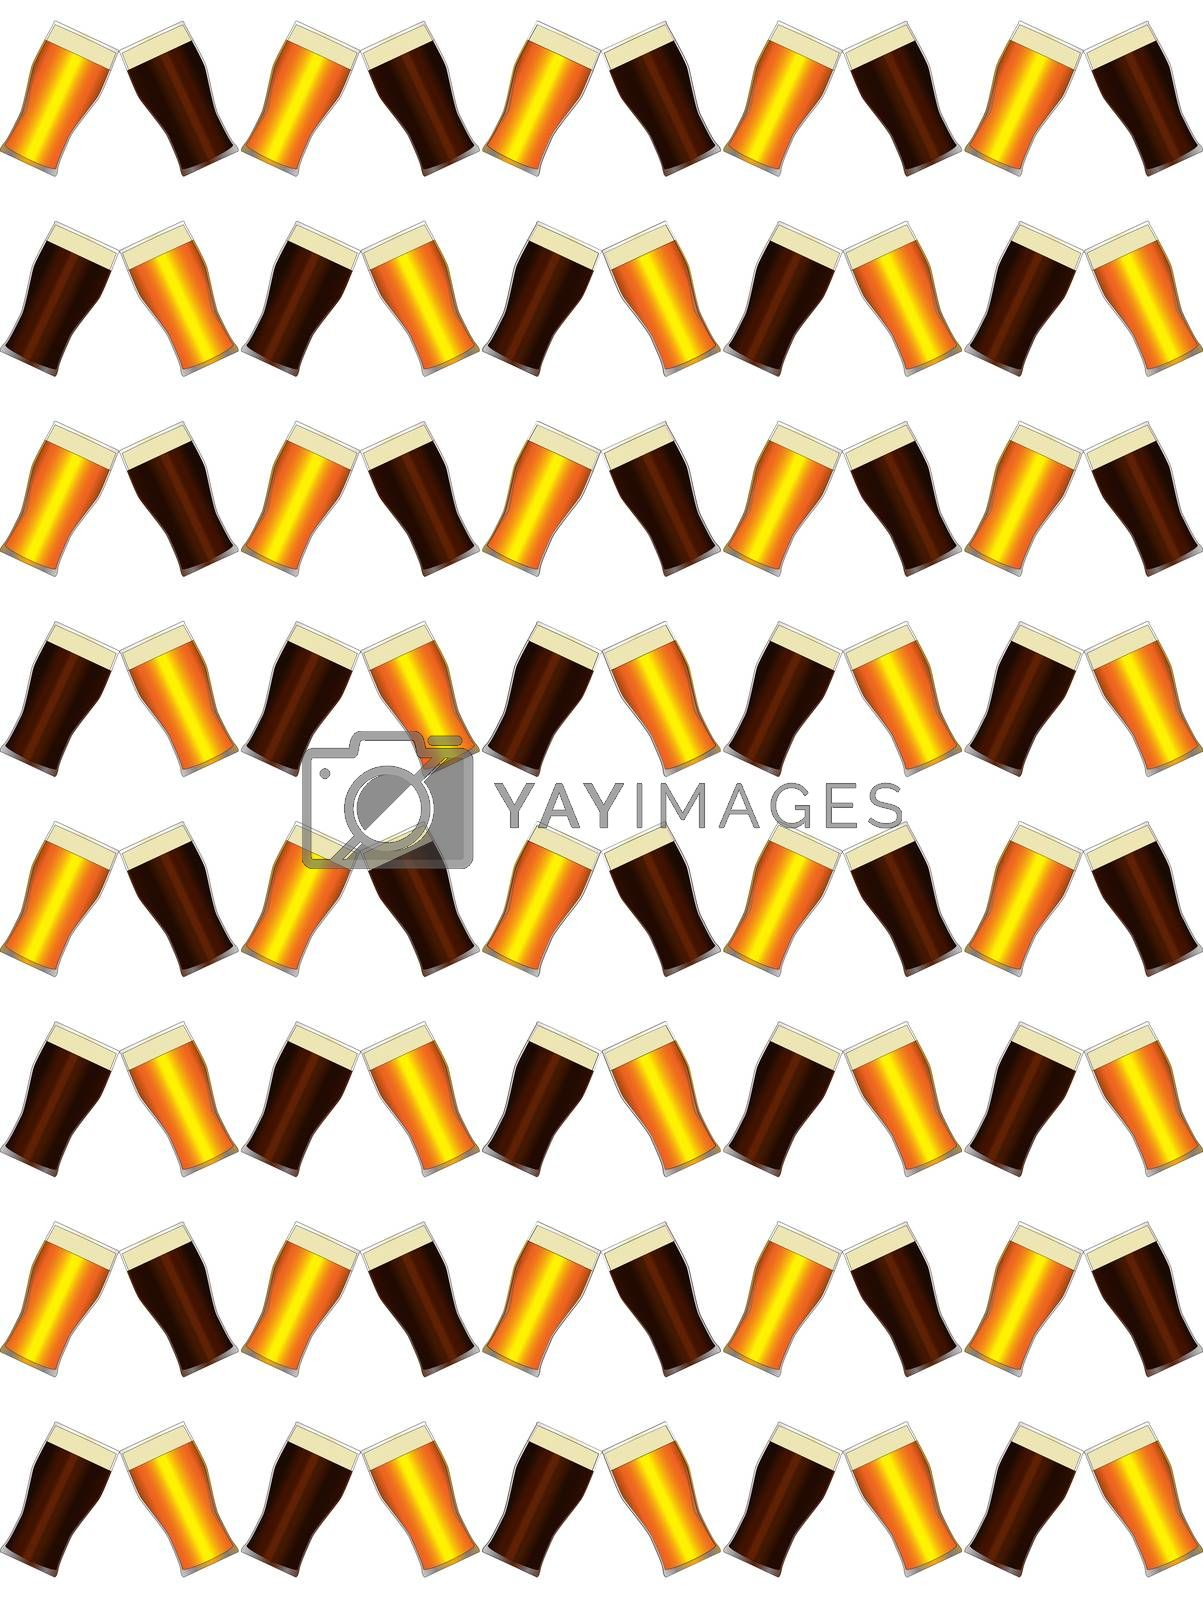 Traditional tall beer glasses set as a seamfree background